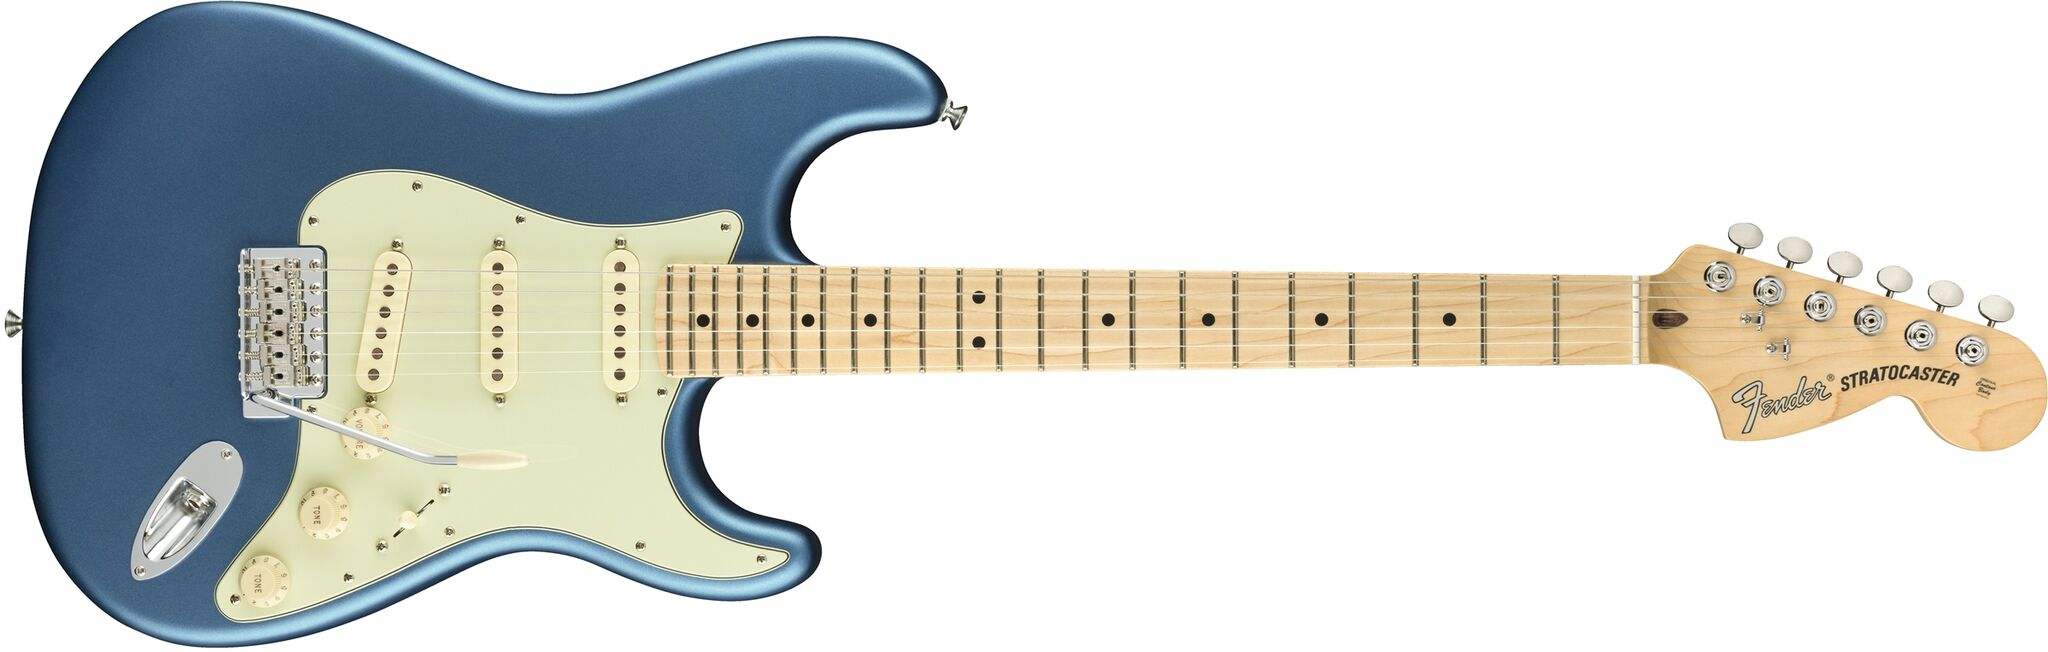 Fender American Performer Series Stratocaster Blue